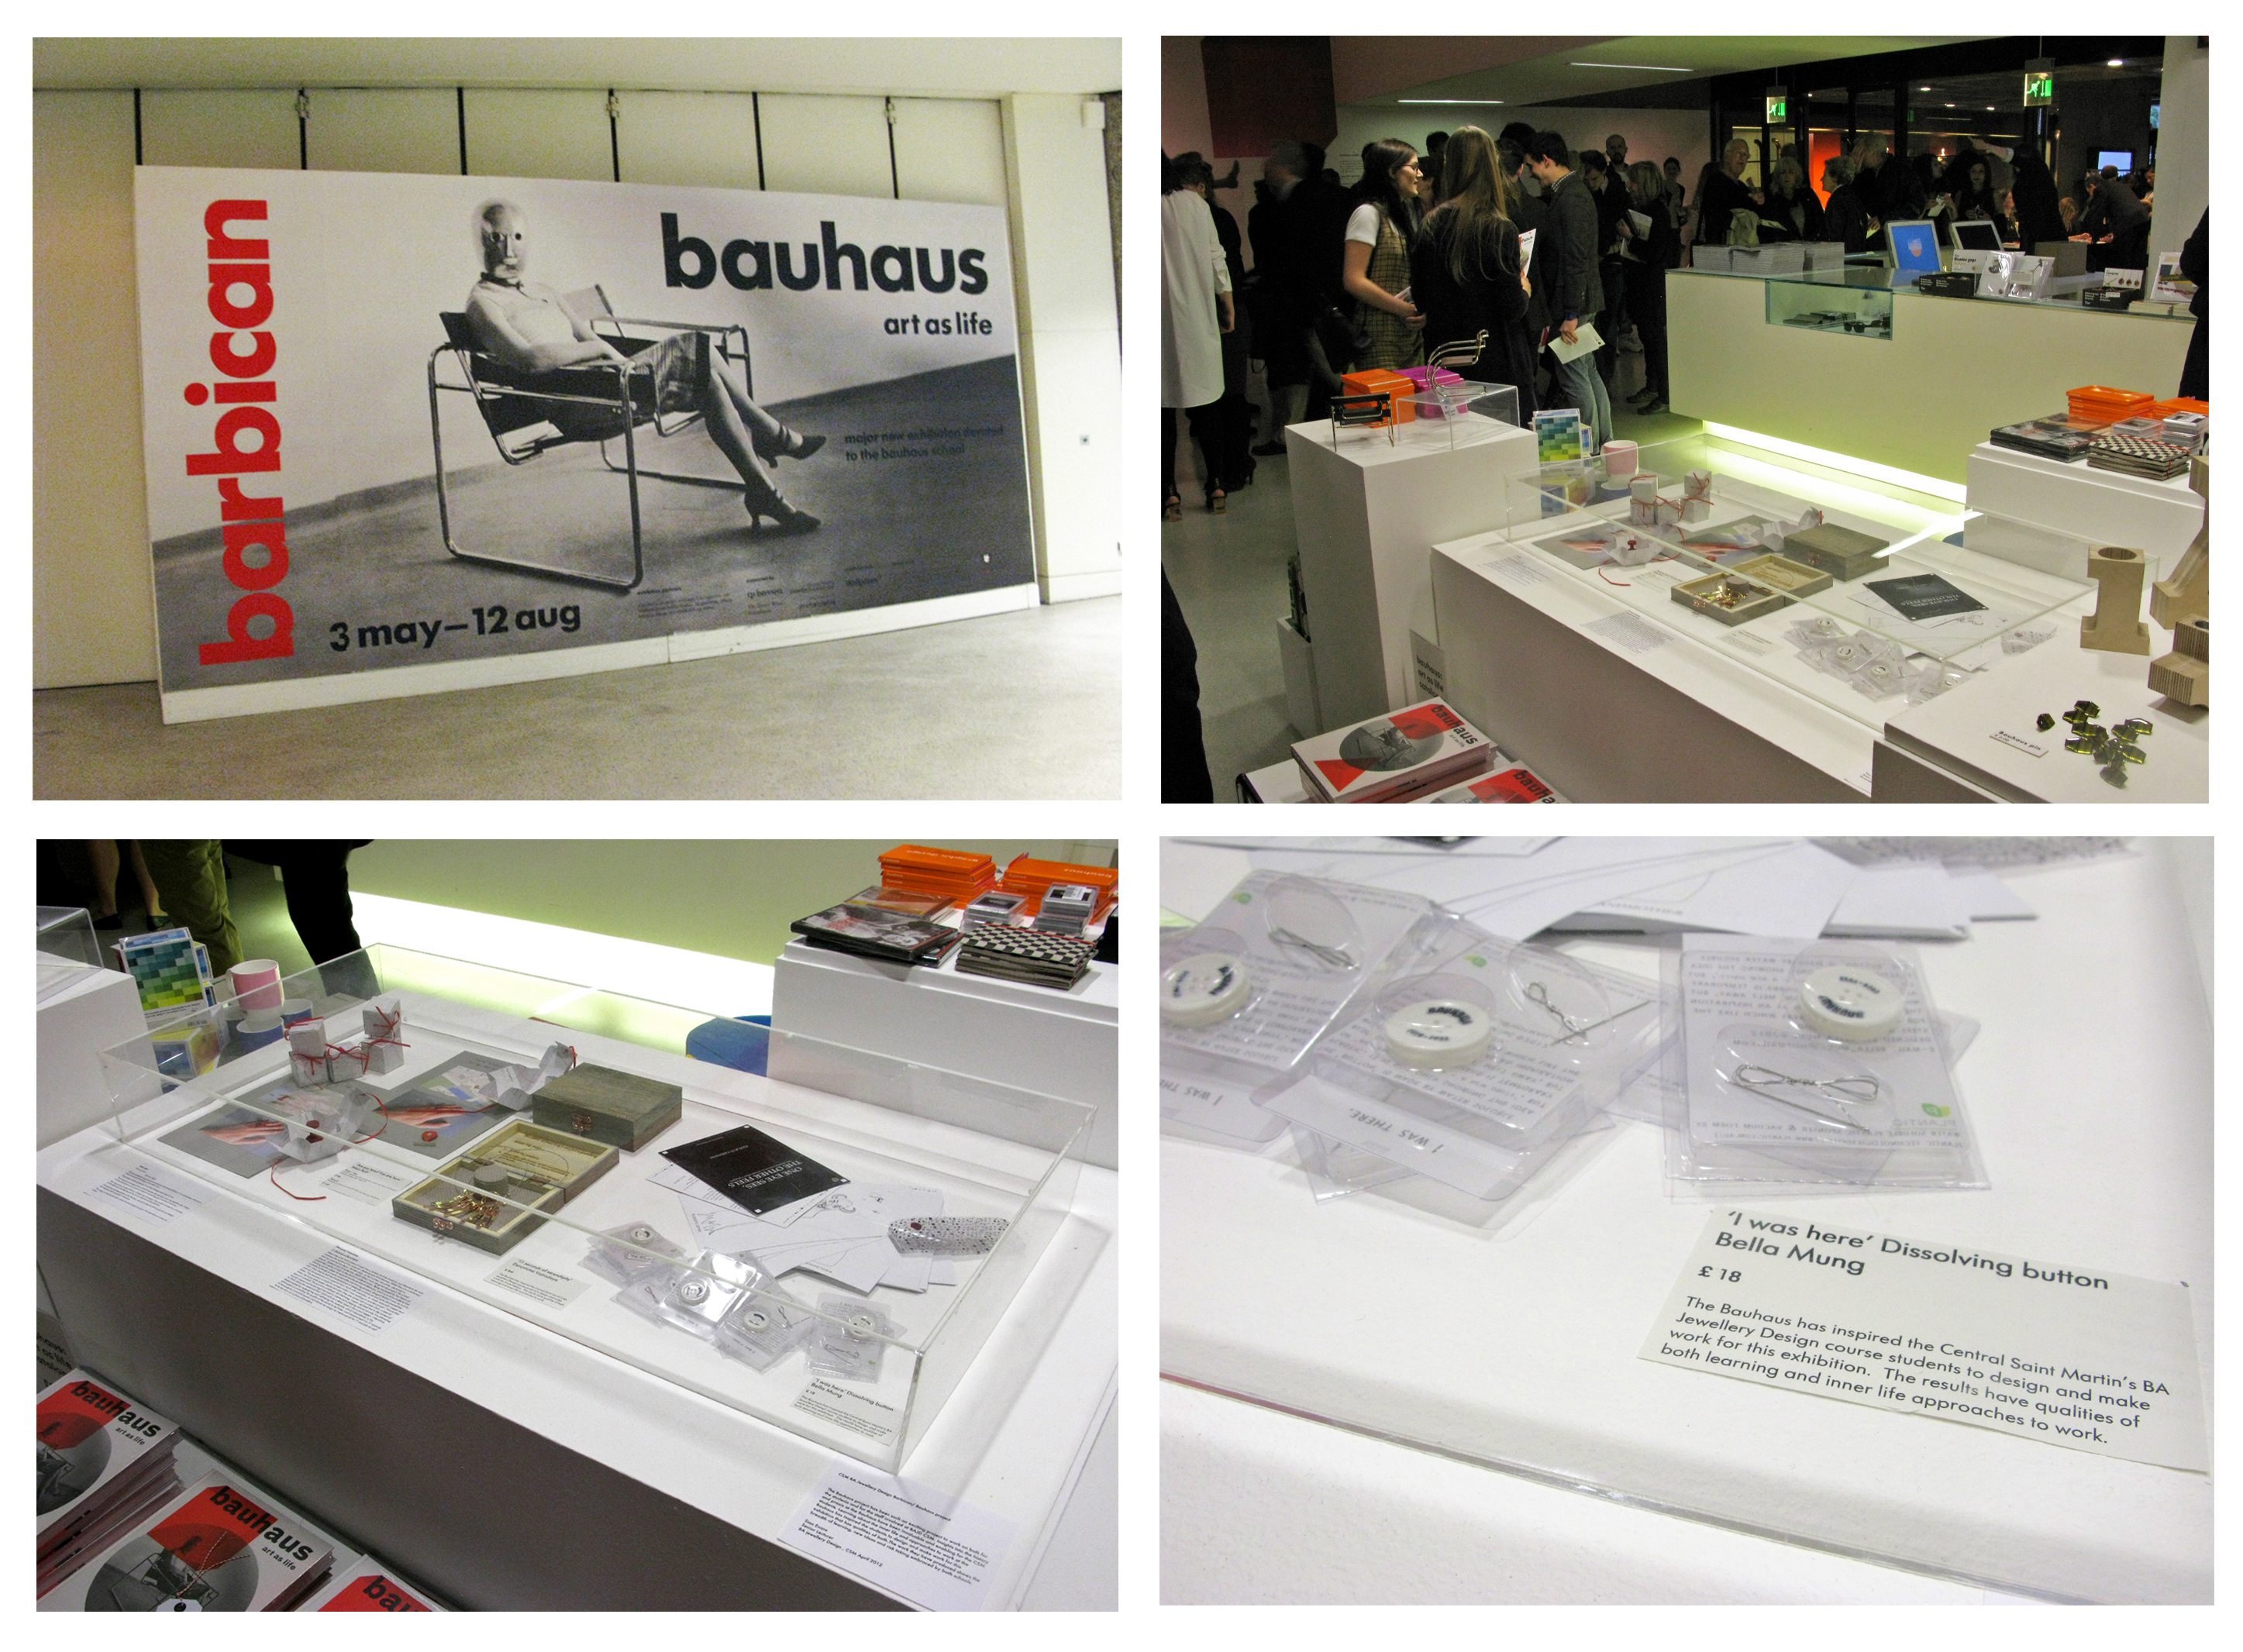 Bauhaus art as life exhibition